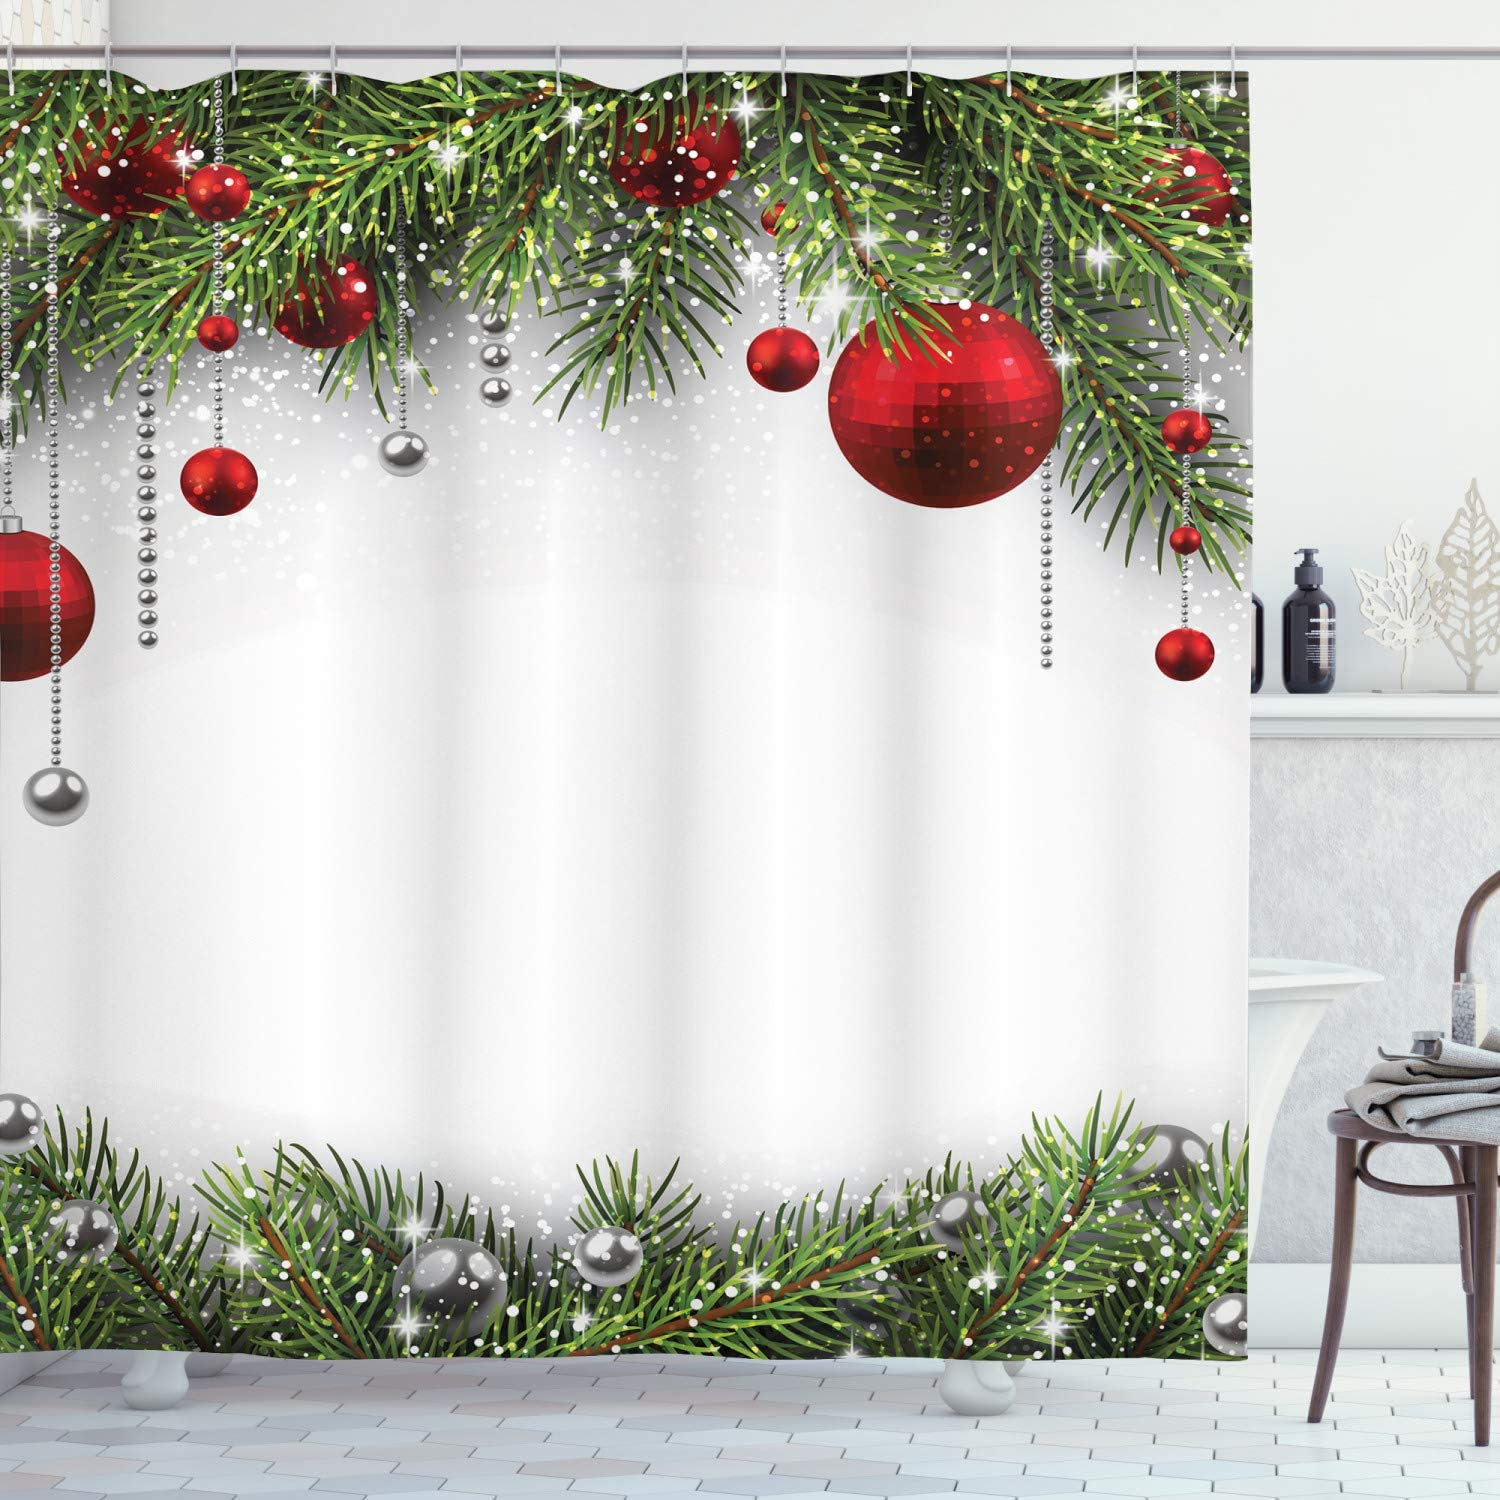 Ambesonne Christmas Shower Curtain with Season Holiday sale Backdrop Max 46% OFF